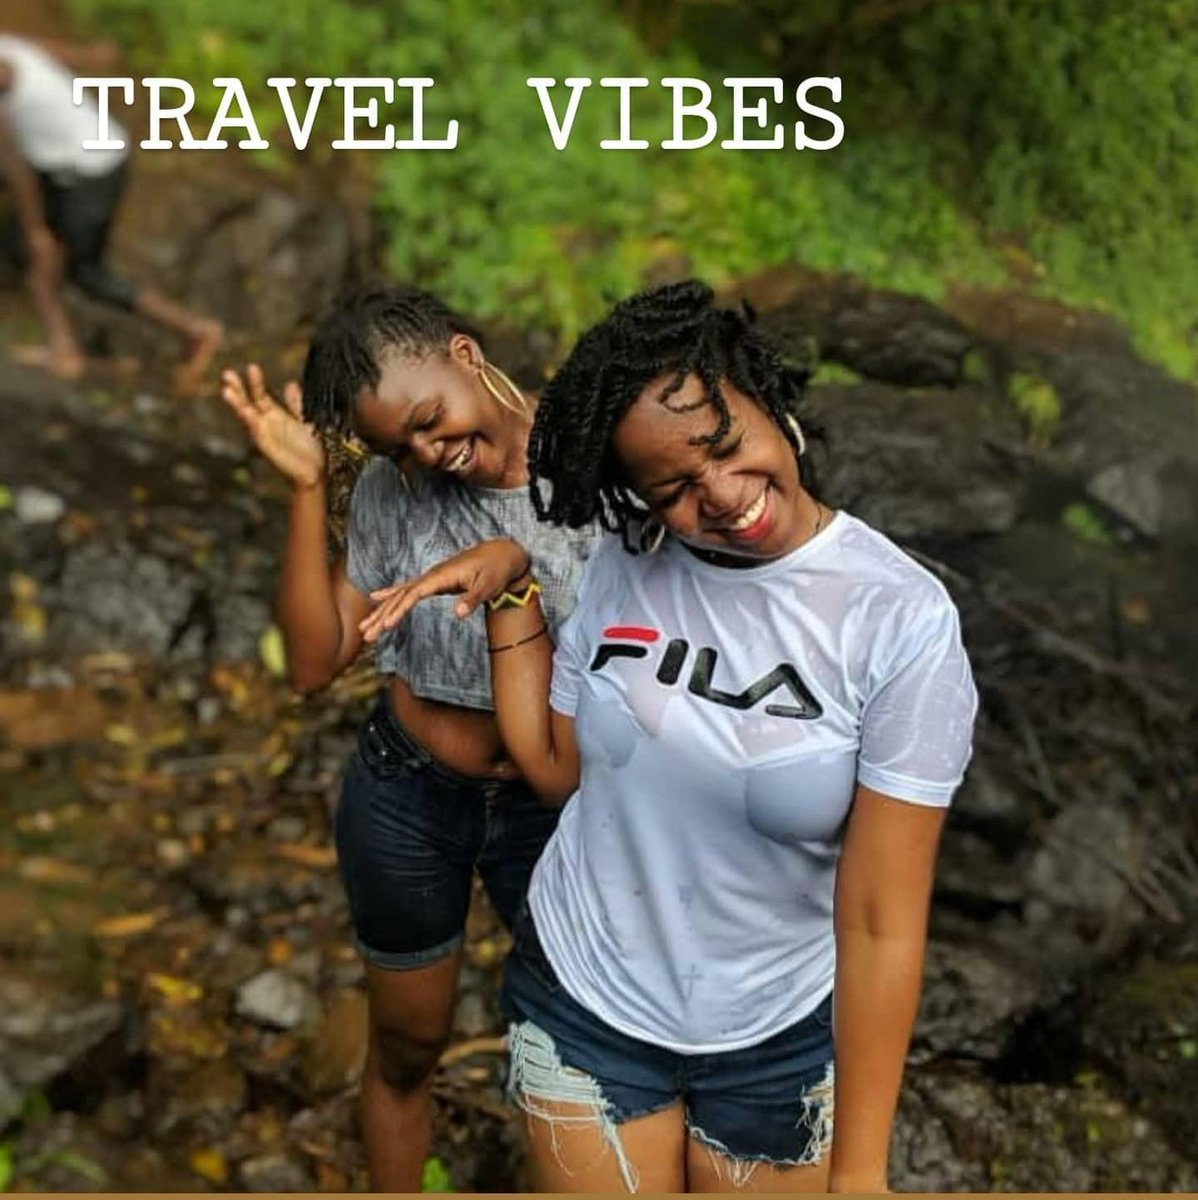 Thursday, we toast to all the ladies that go all out and Travel .🥂  You are our MVPs today .👏👏  Carry Only Vibes ,Live with memories . That's how we make you feel !💯♥️  #TulambuleUganda  #KemptenSafaris #SipiRave #GirlsRock .